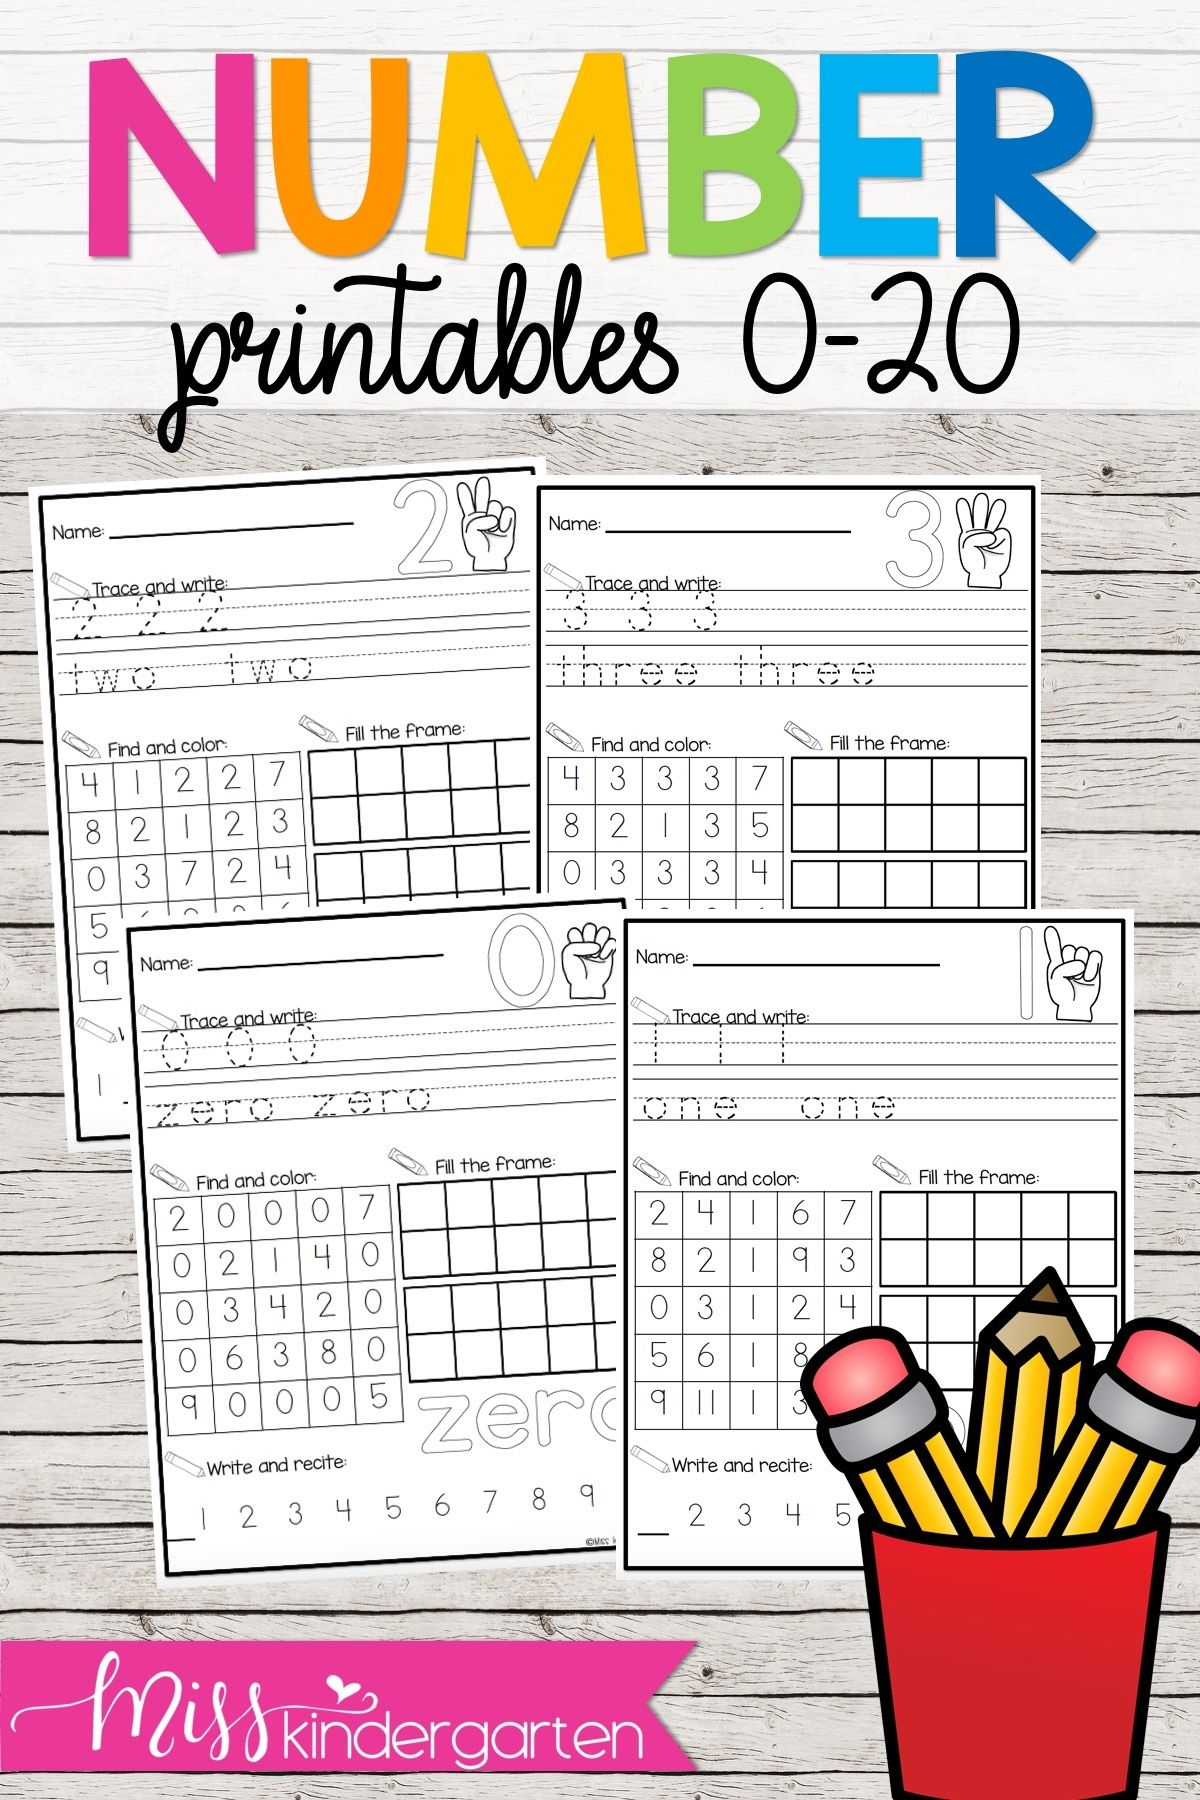 These Worksheets Help Your Students Practice Writing Their Numbers And Seeing Them Kindergarten Lessons Kindergarten Math Activities Kindergarten Lesson Plans [ 1800 x 1200 Pixel ]